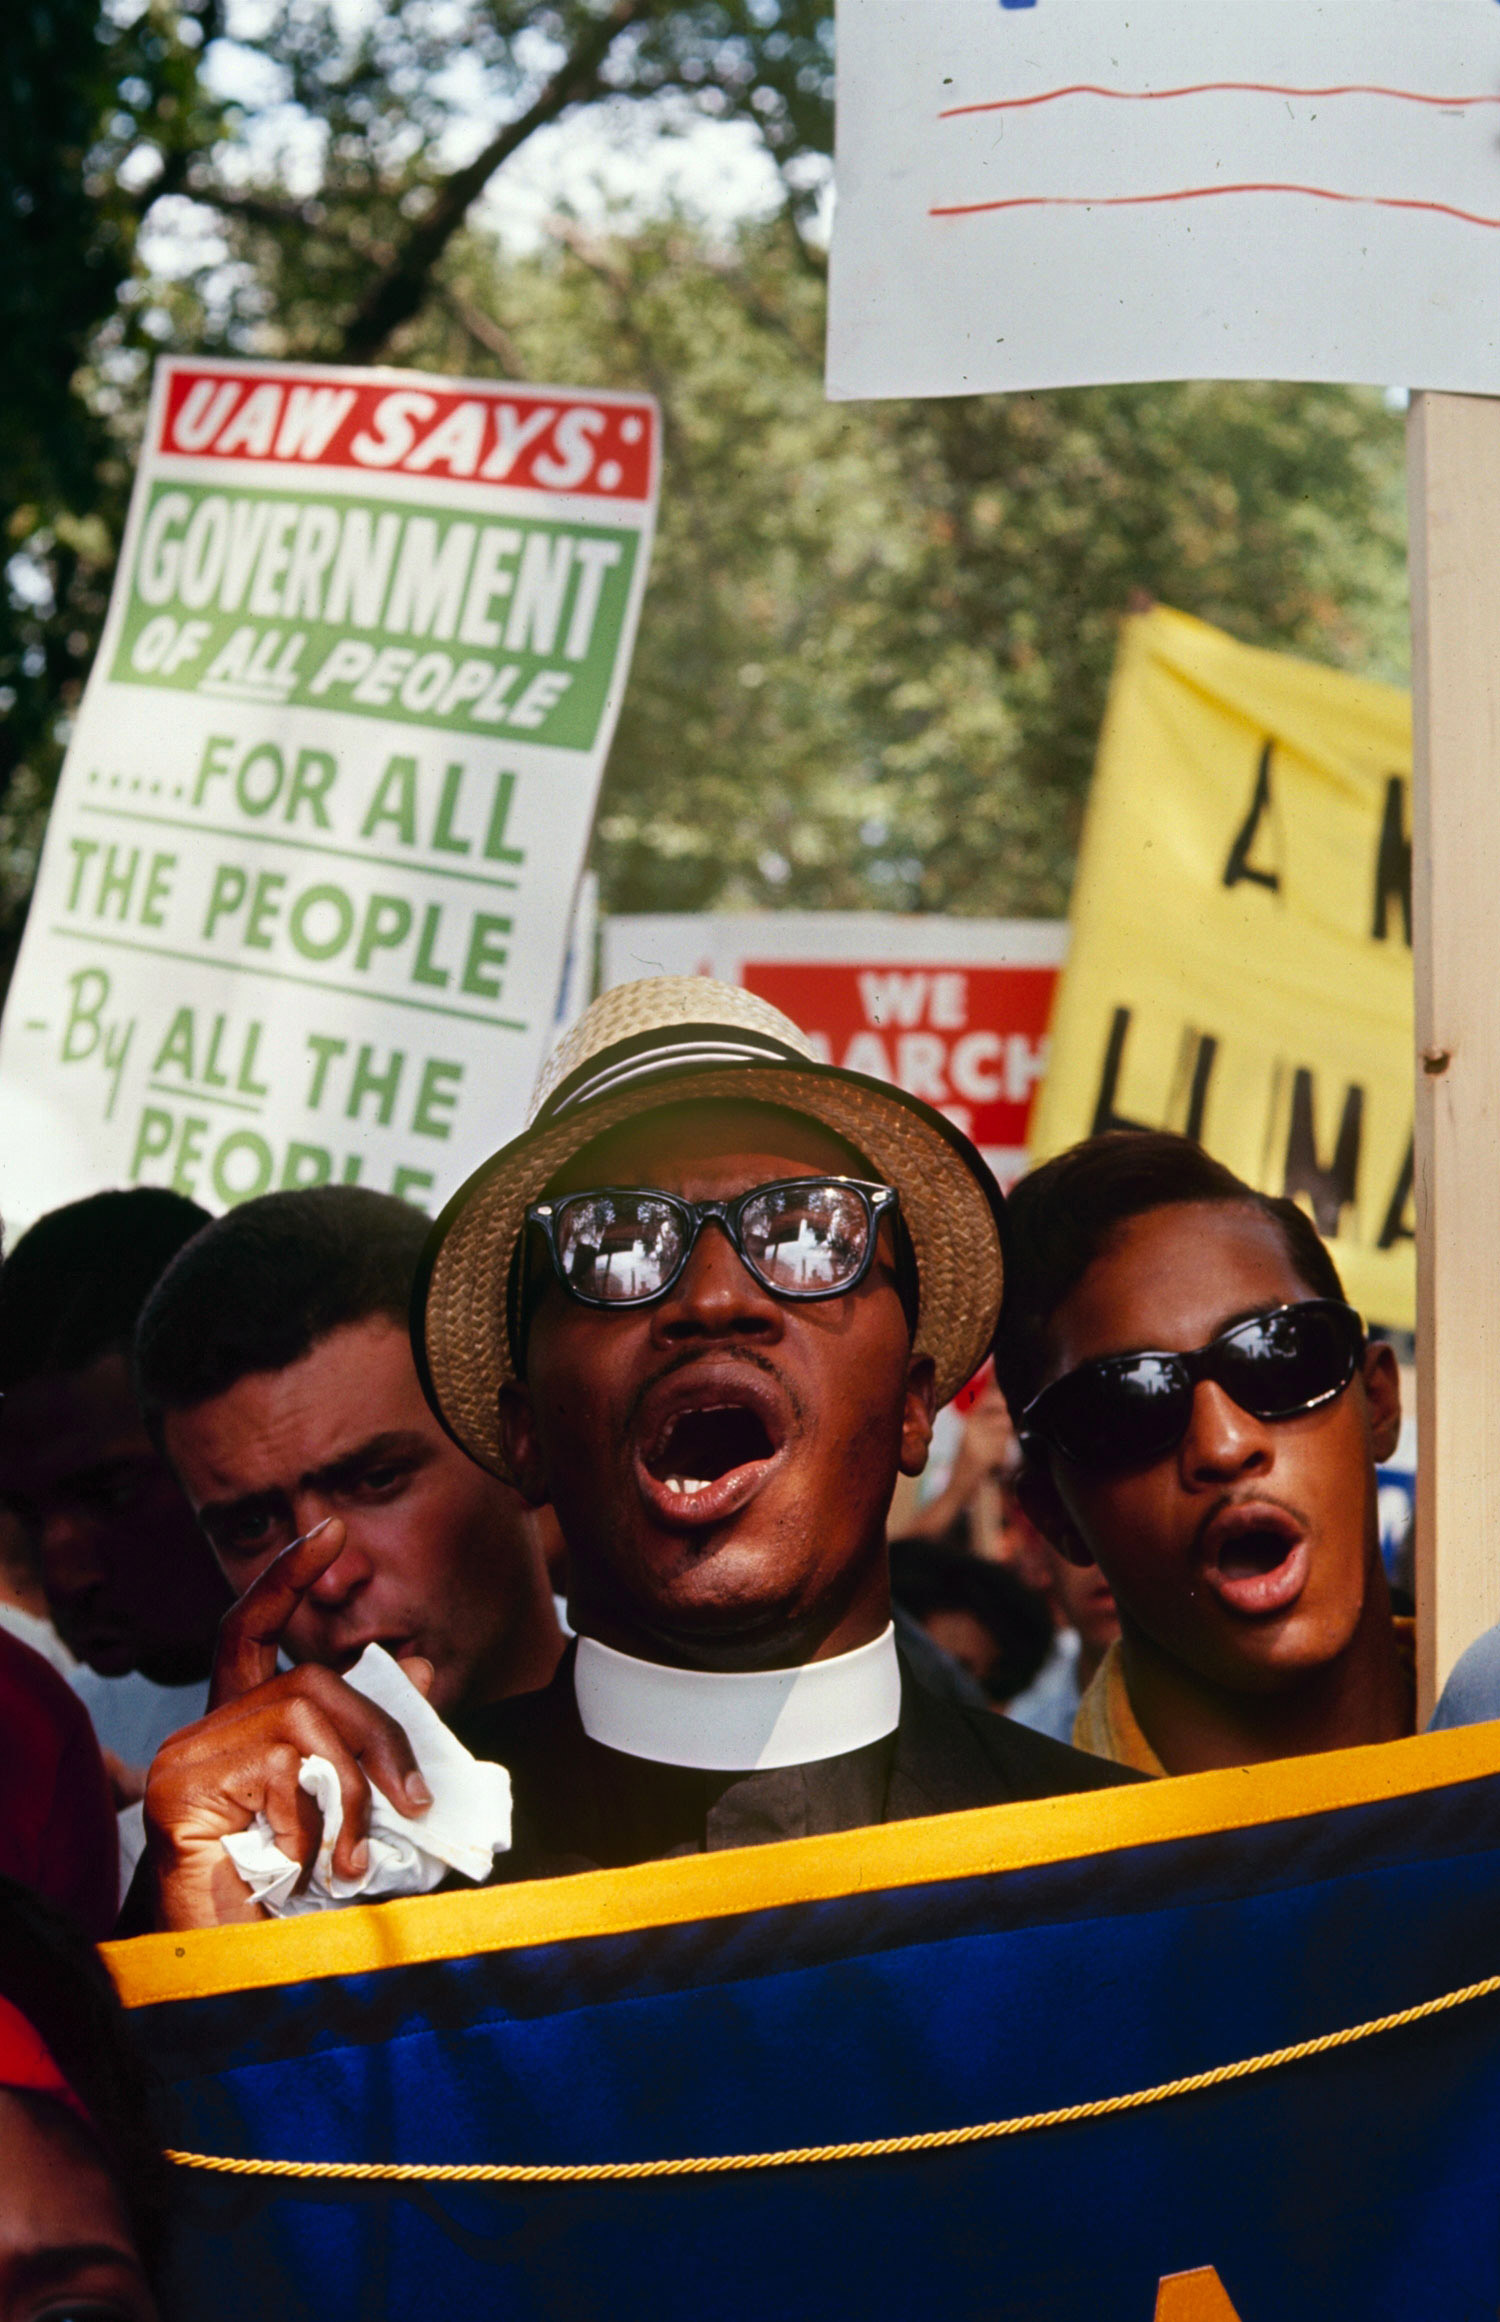 Scene from the March on Washington for Jobs and Freedom, Aug. 28, 1963.